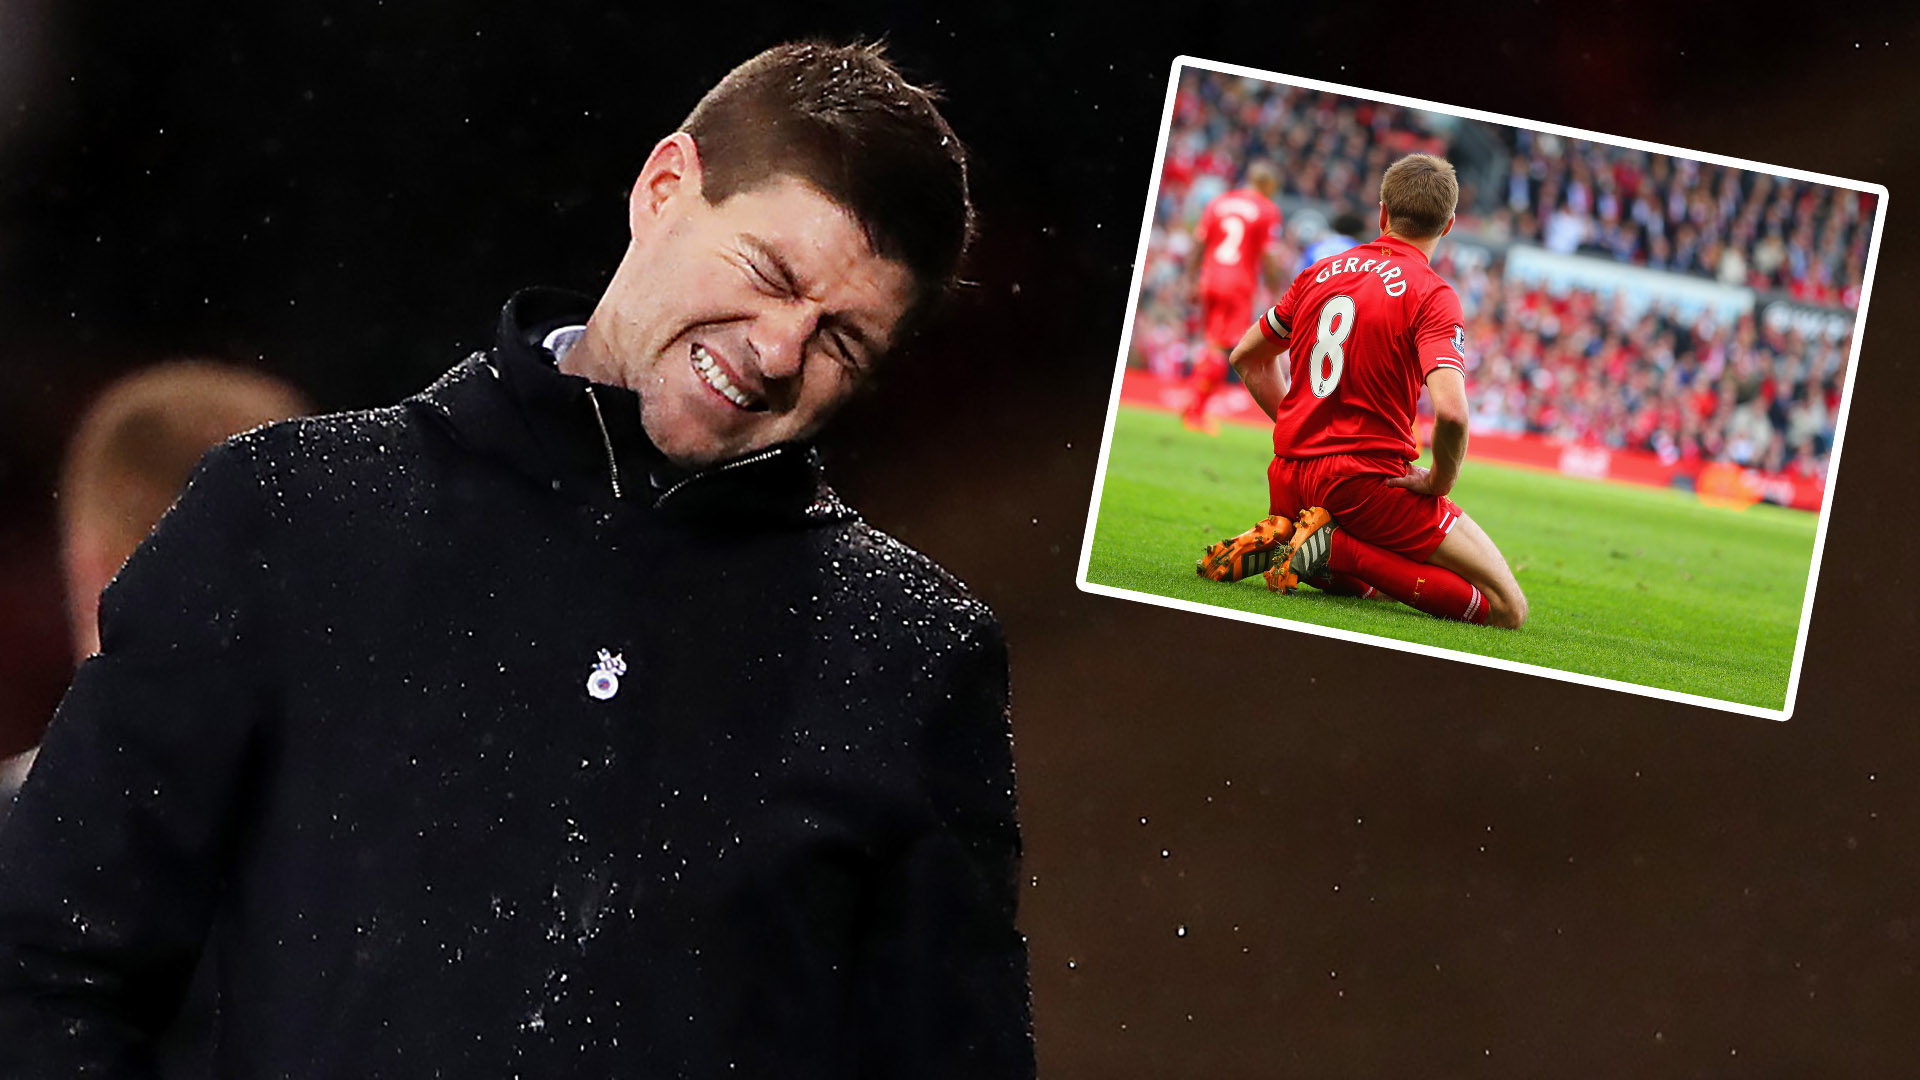 Gerrard man of the match betting usa bestbetting strictly running